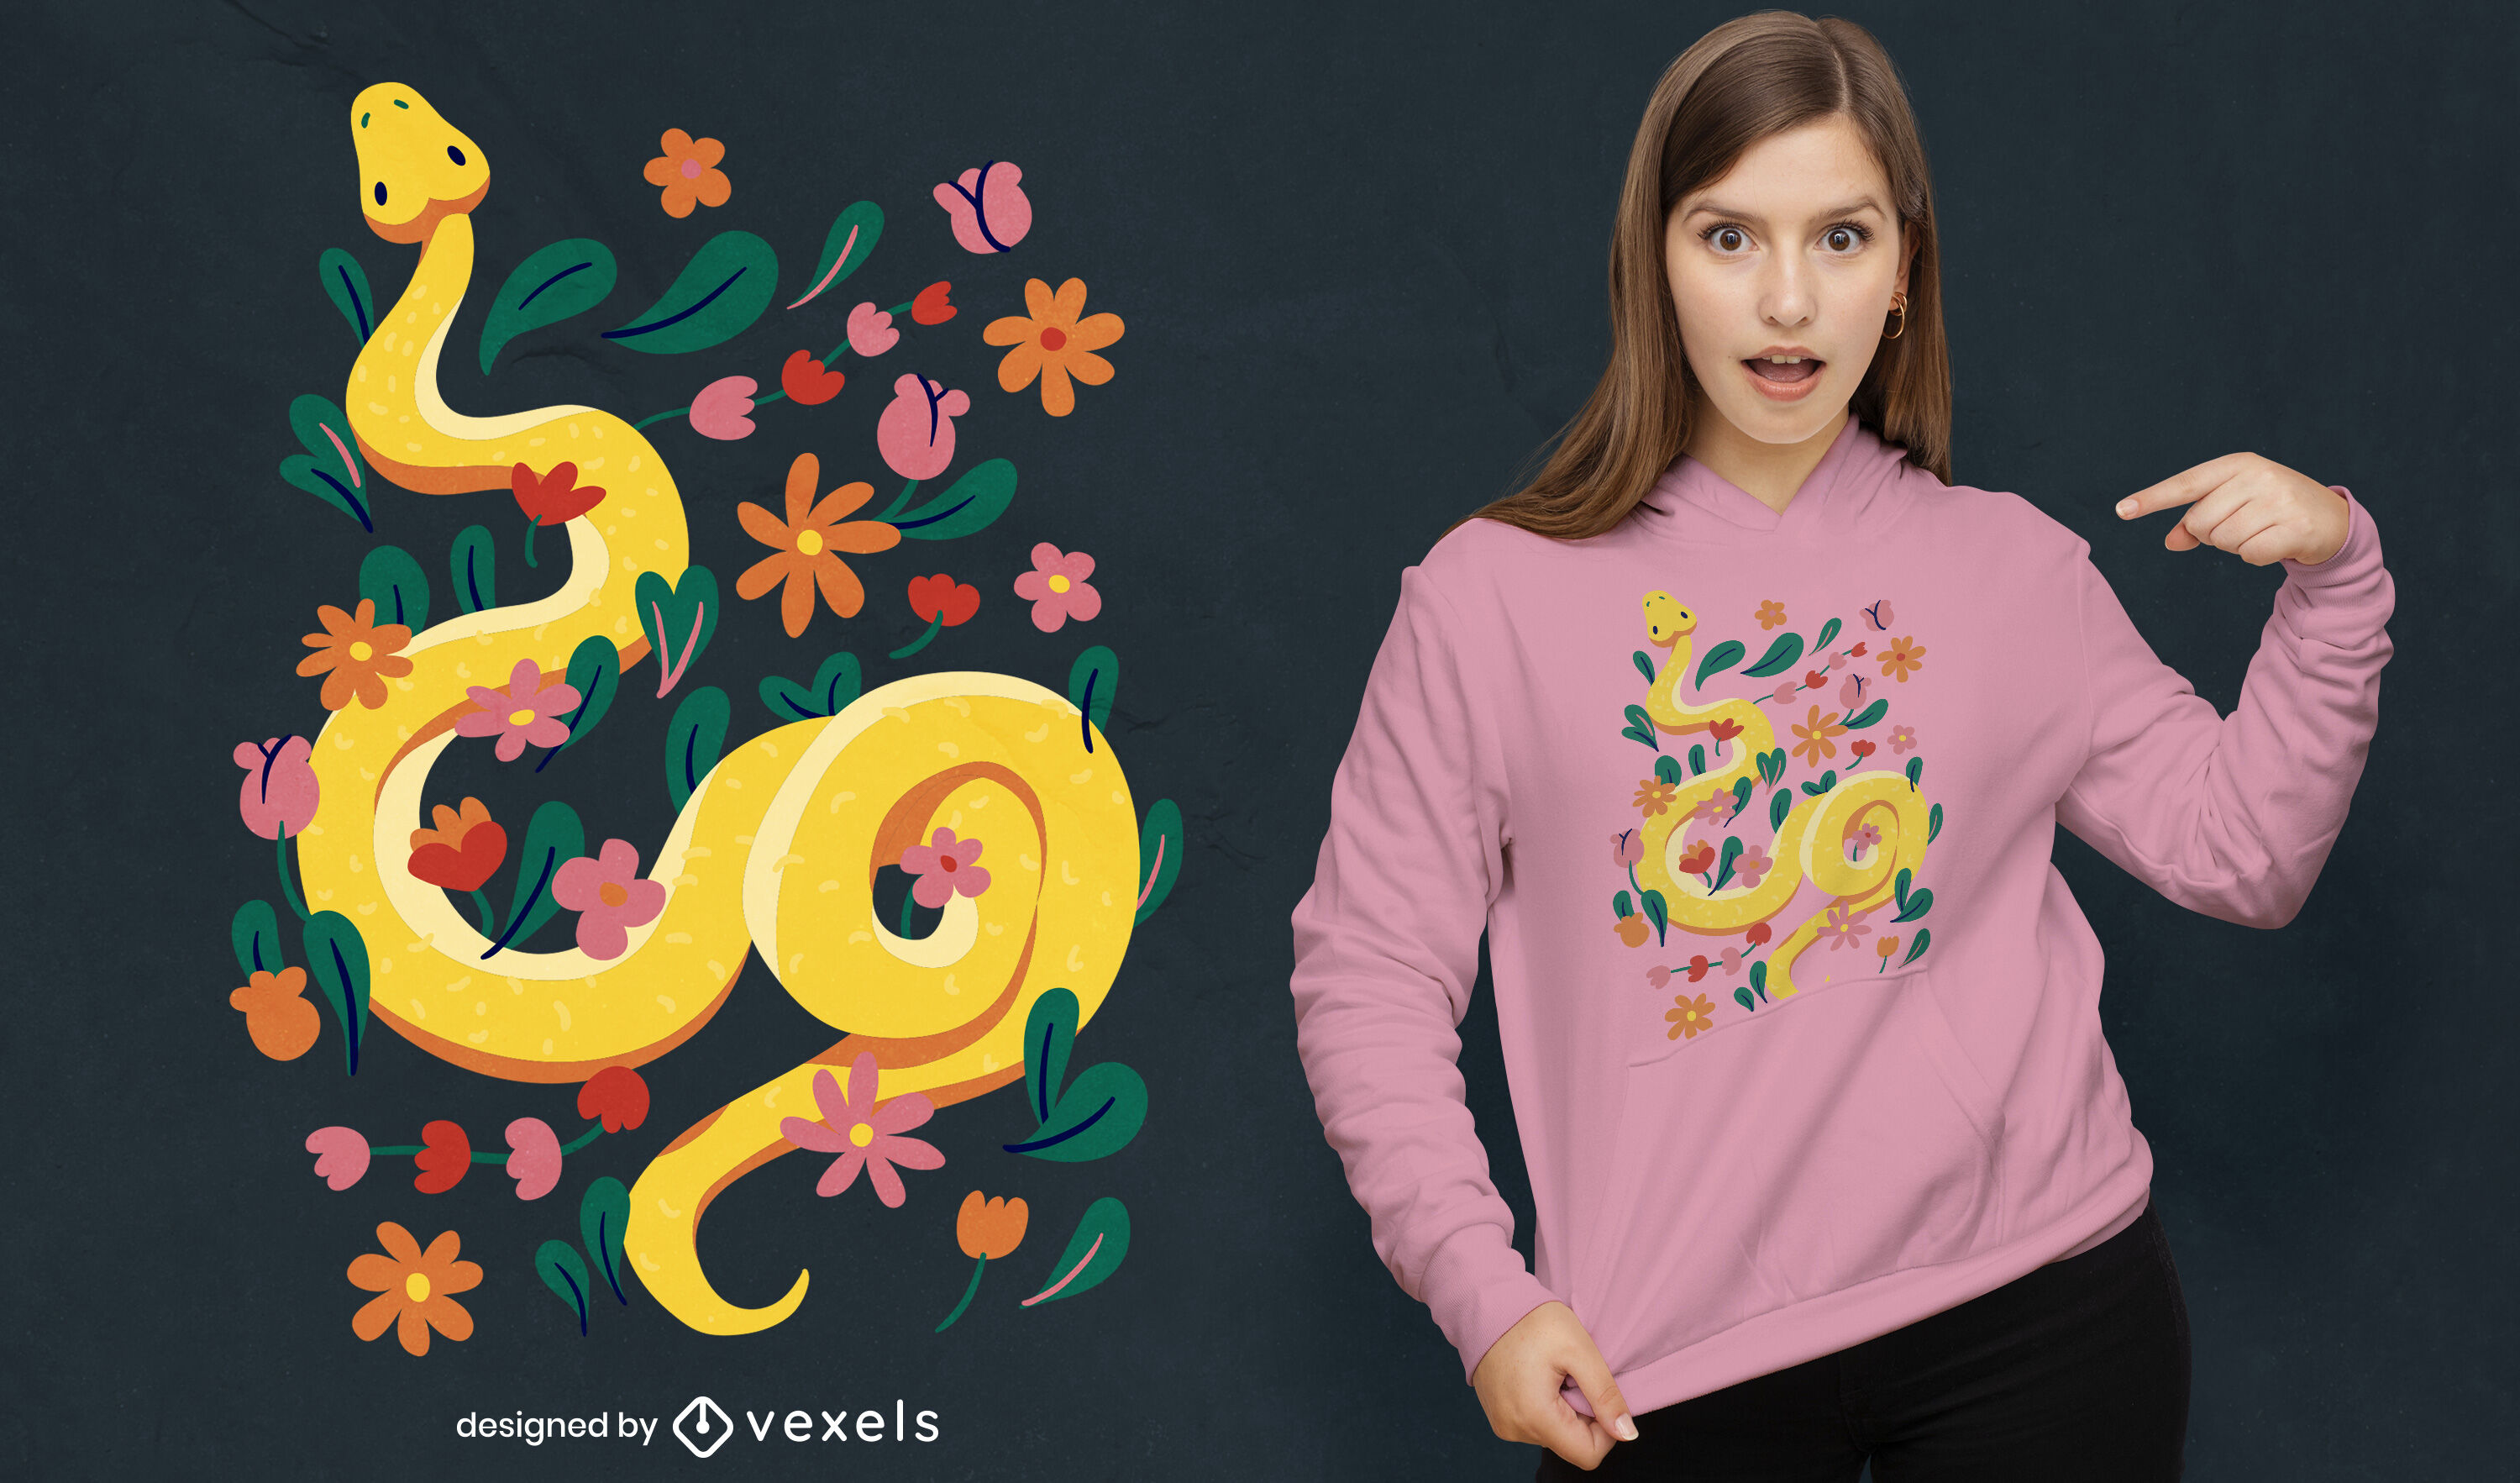 Snake and flowers t-shirt design